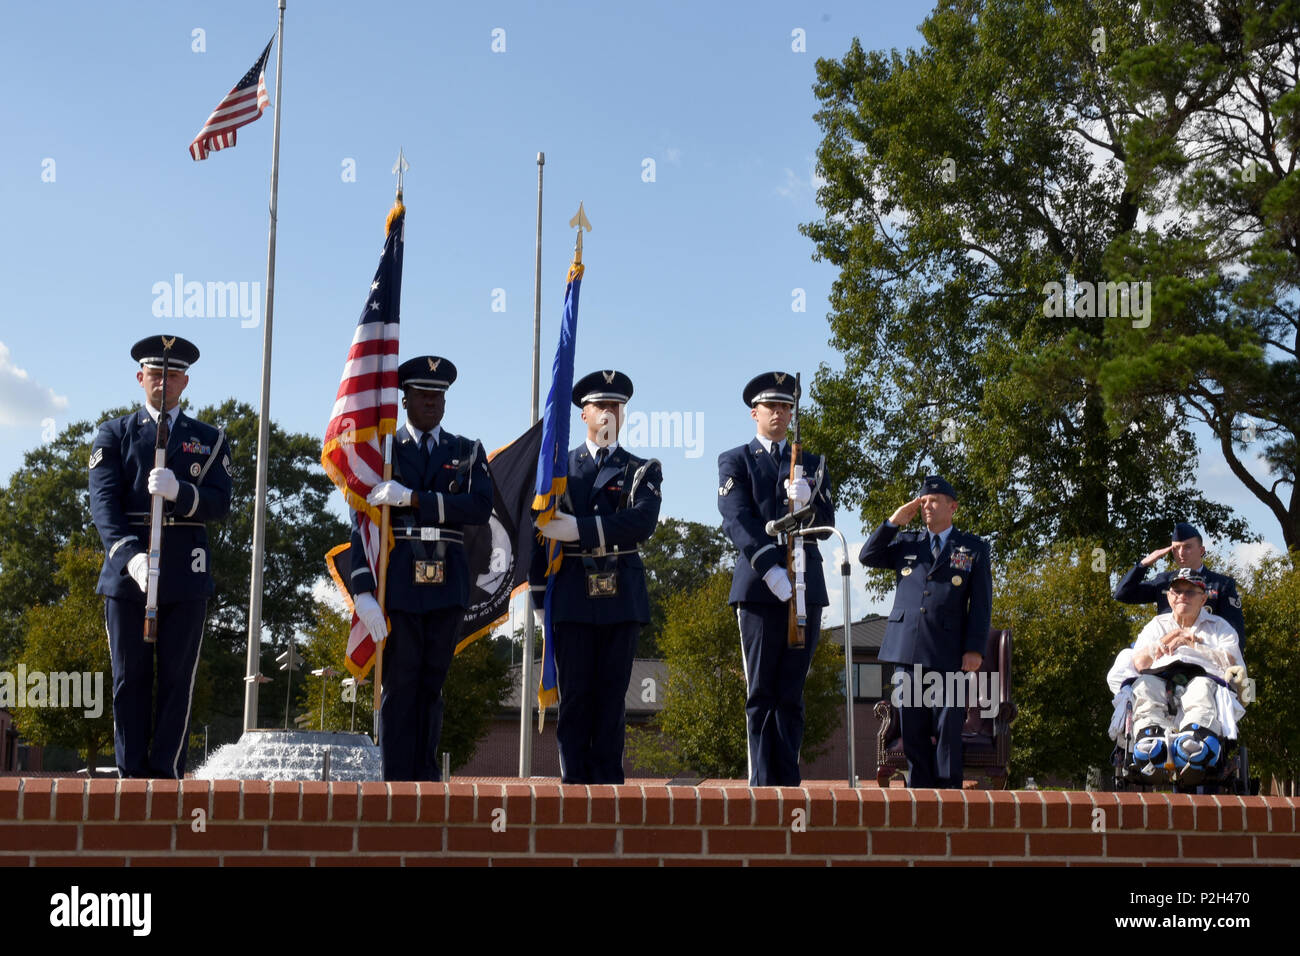 The Seymour Johnson Air Force Base Honor Guard presents the flags